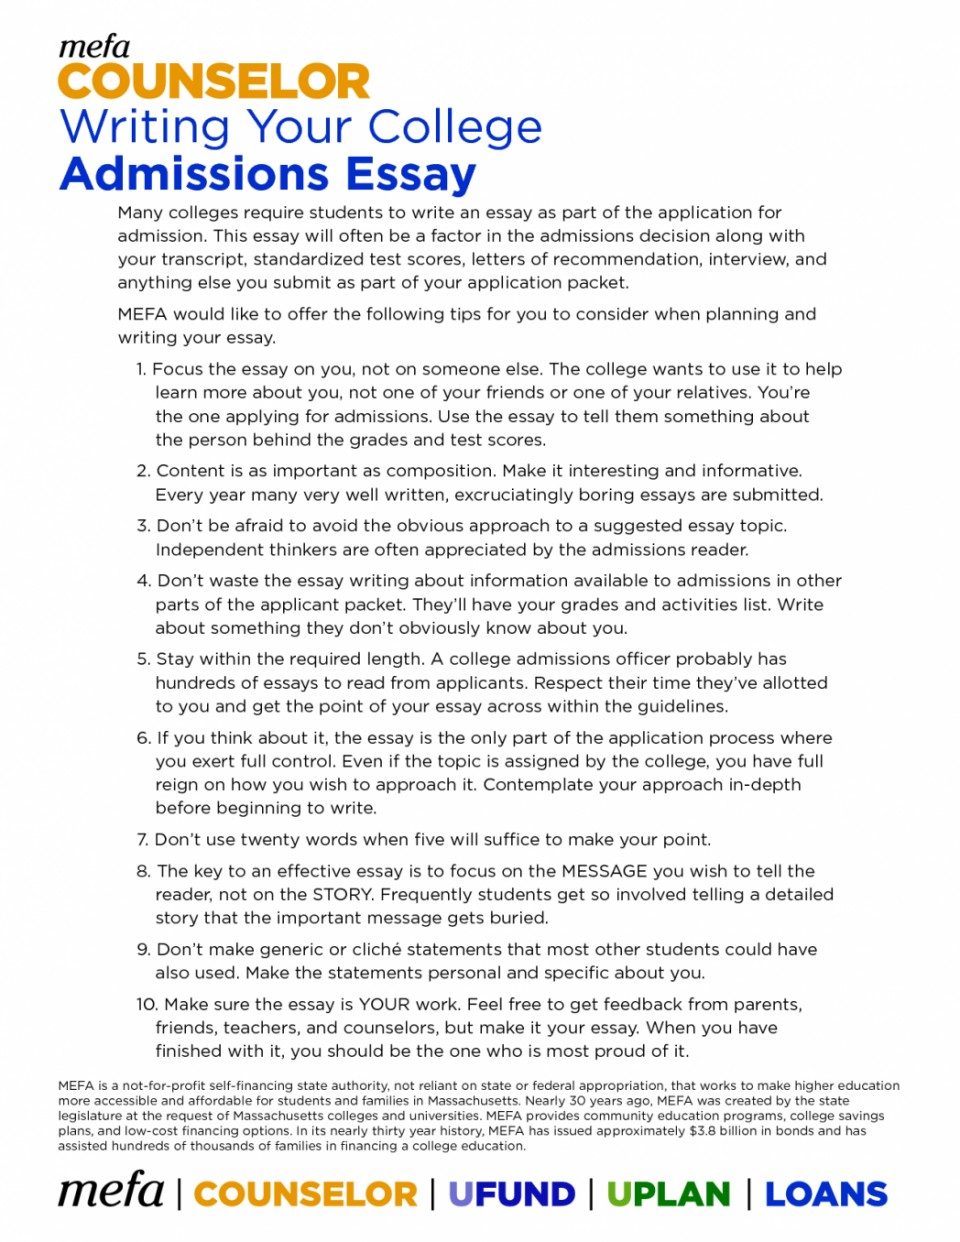 016 Essay Example College Writing Help High School How Many Paragraphs Should Application Wuaom Pages Words Long What About Formatted In Mla Format 1048x1356 Are An Unforgettable Informative Body Needed 960